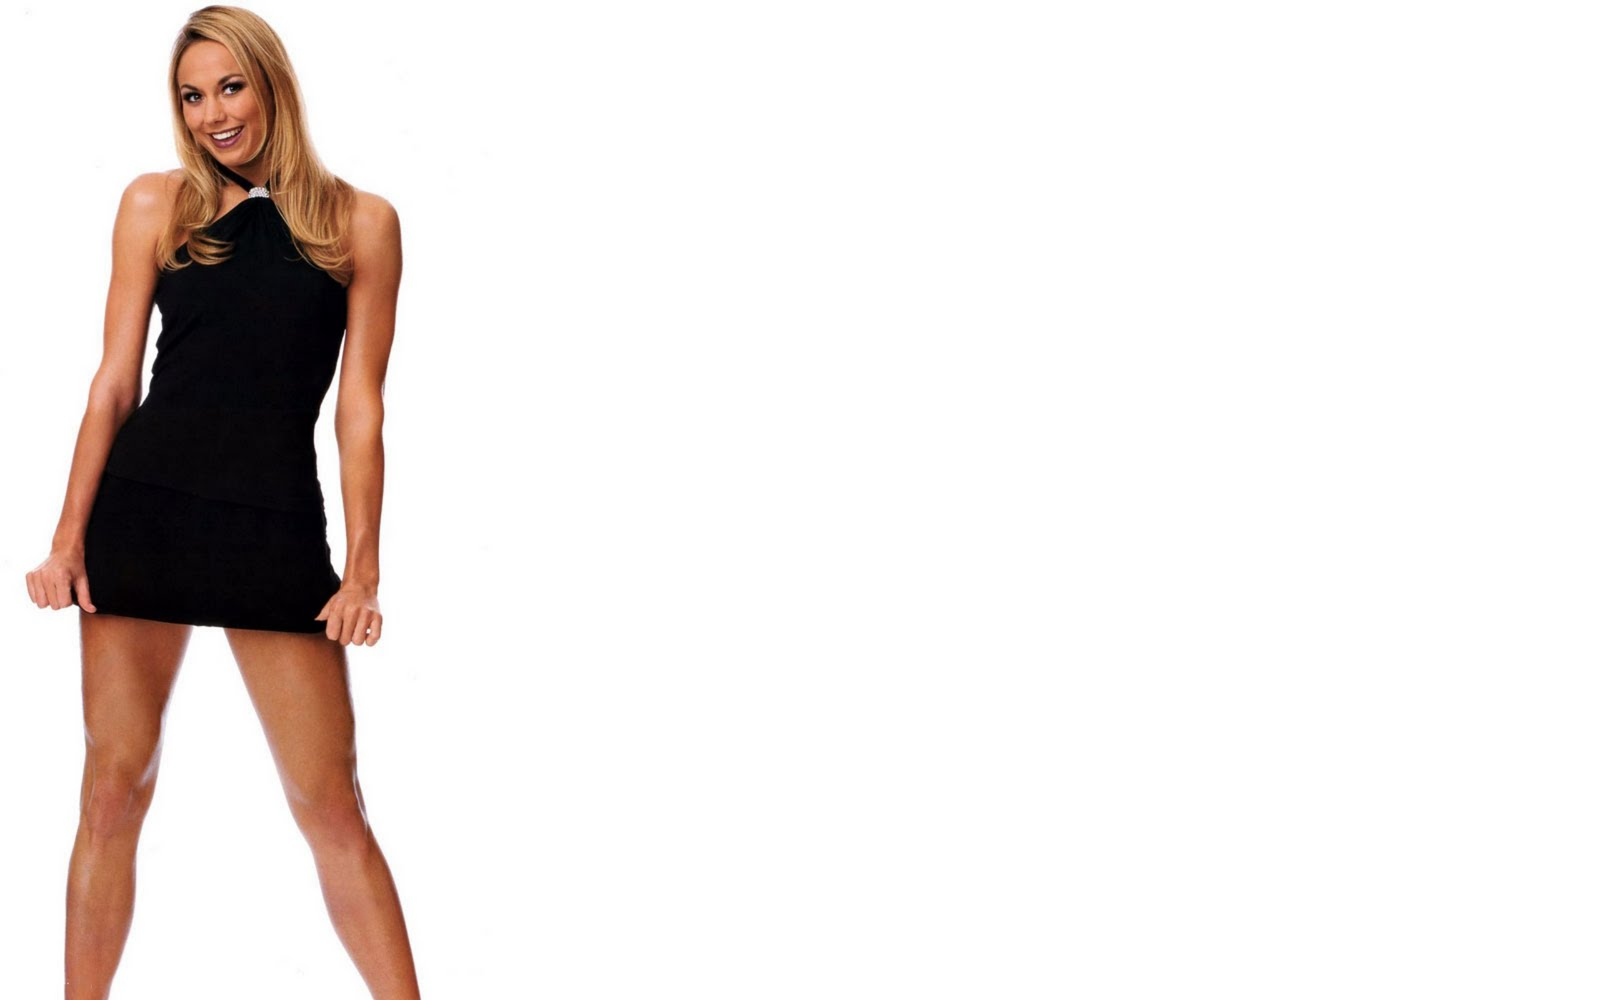 47 stacy keibler wallpapers - photo #1